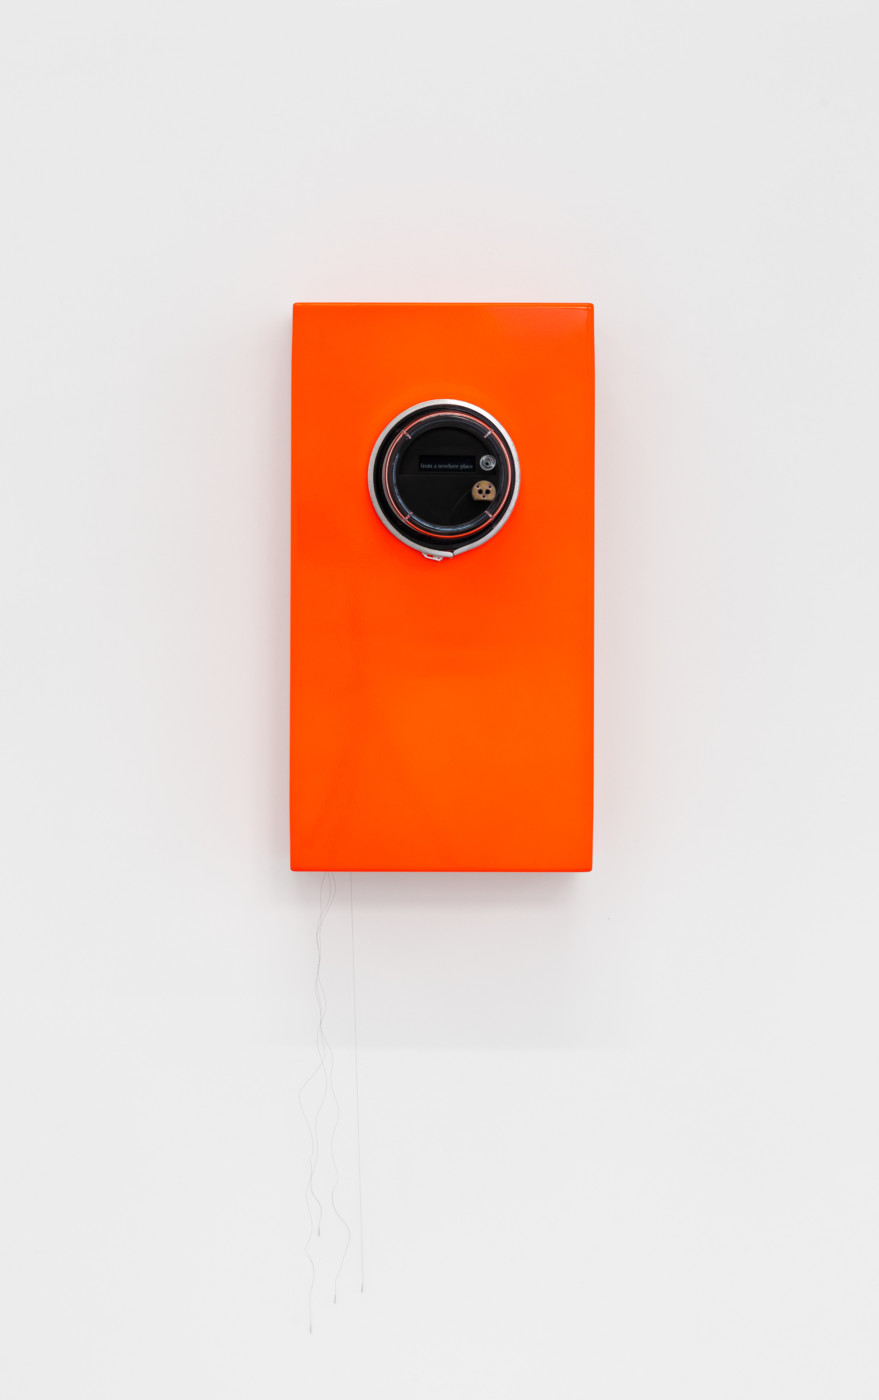 SUSCEPTIBLES  The Odds , 2018 Acrylic and PVC powermeter case, LED display, computer, motors, batteries, nylon sutures, aluminum and powder-coated steel 36 x 67 x 24 cm / 14.3 x 26.6 x 9.5 in  COOPER JACOBY